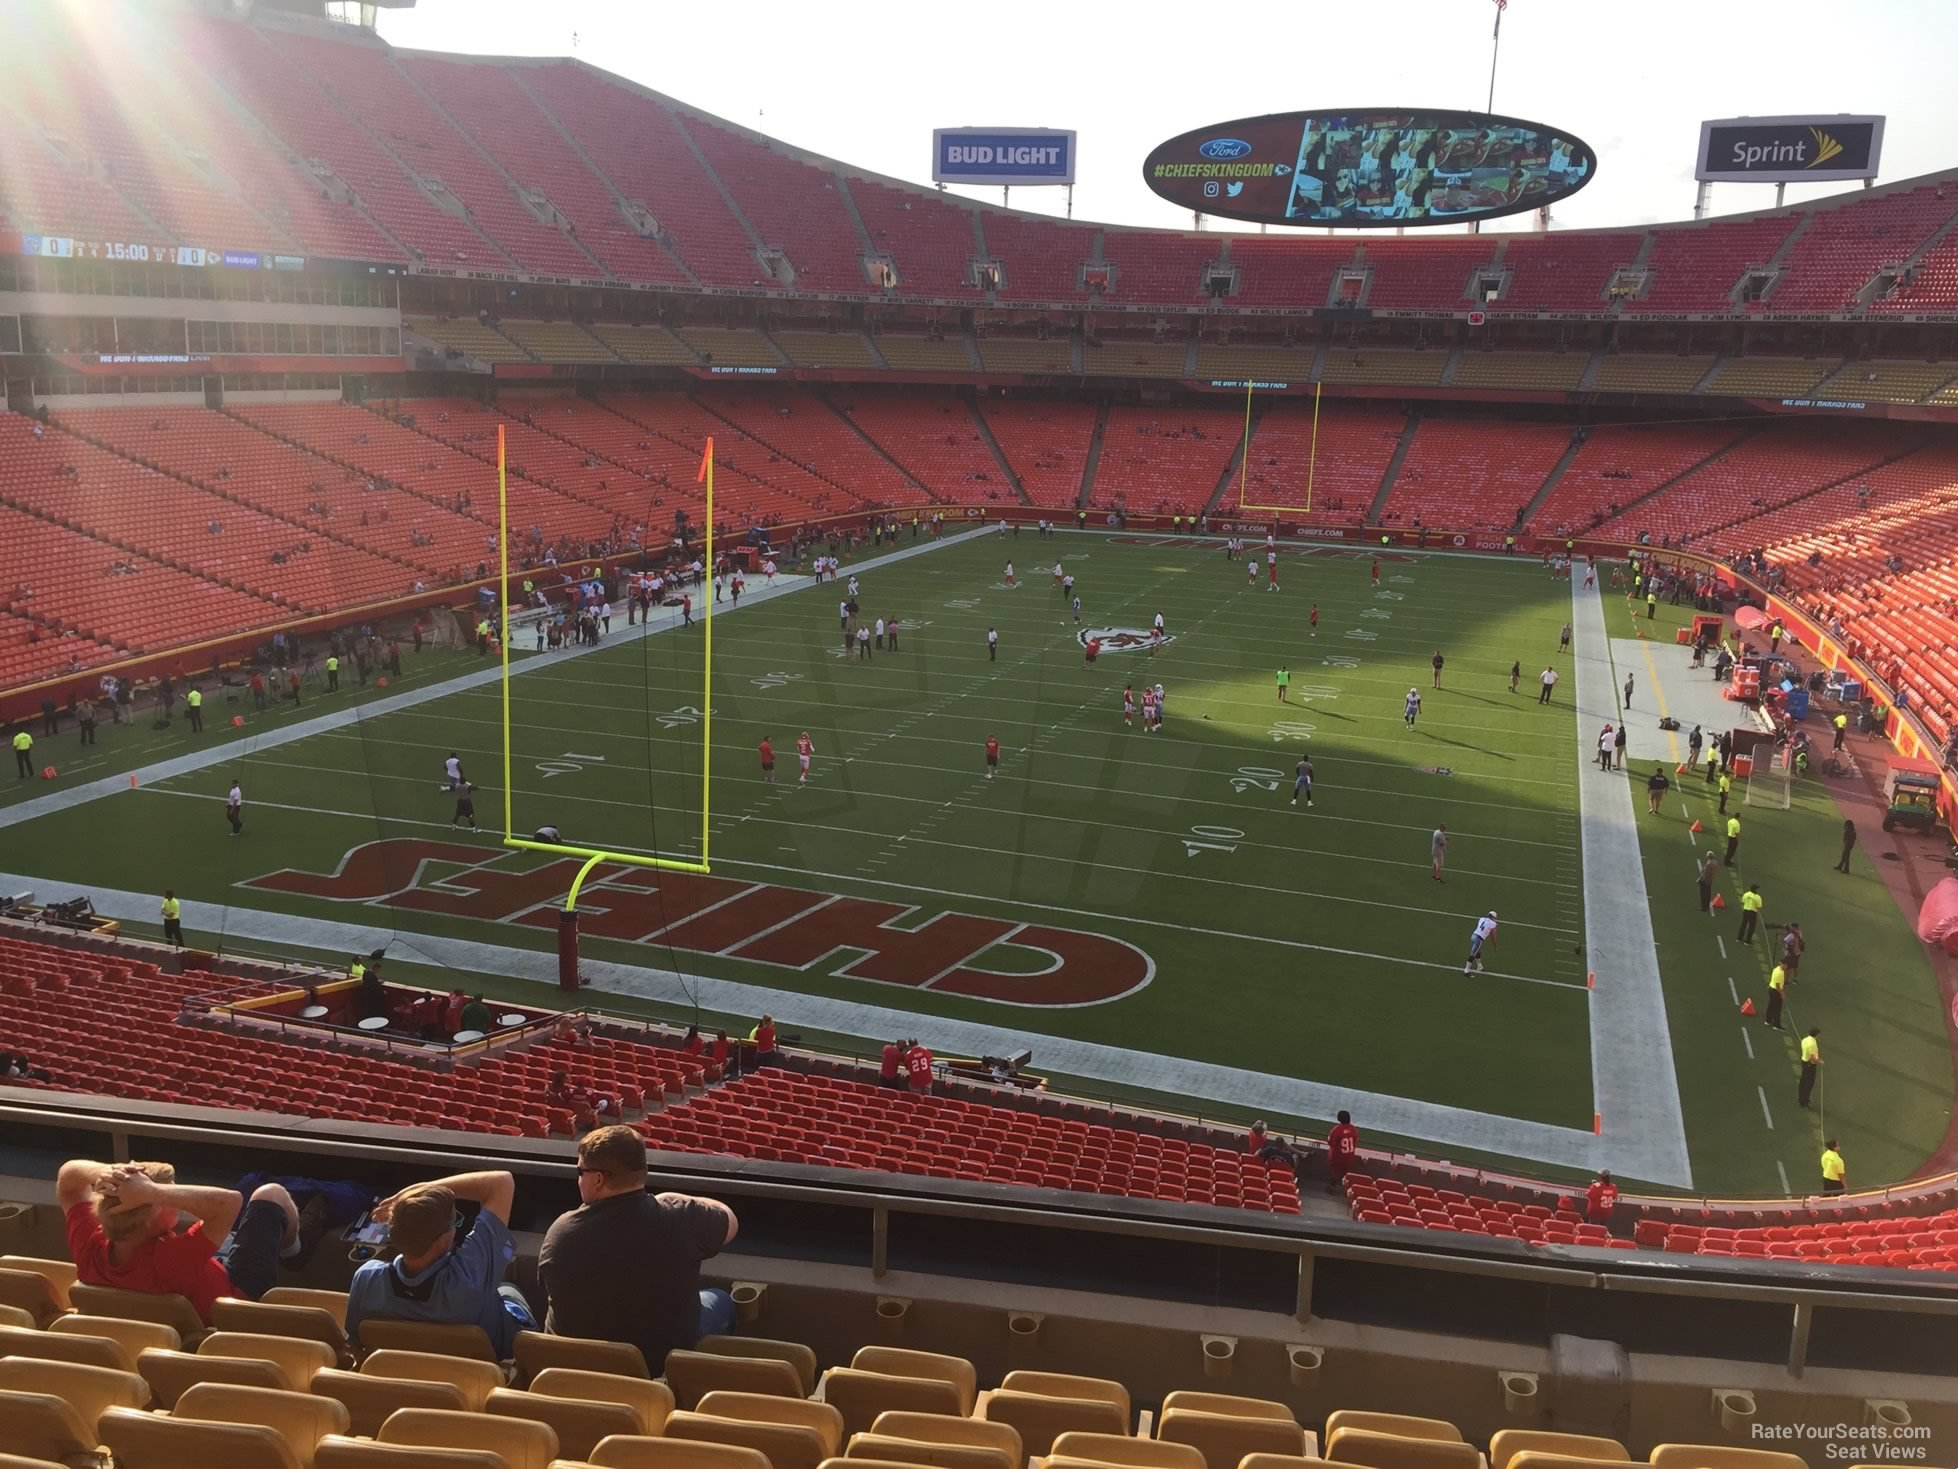 Seat View for Arrowhead Stadium Section 211, Row 7